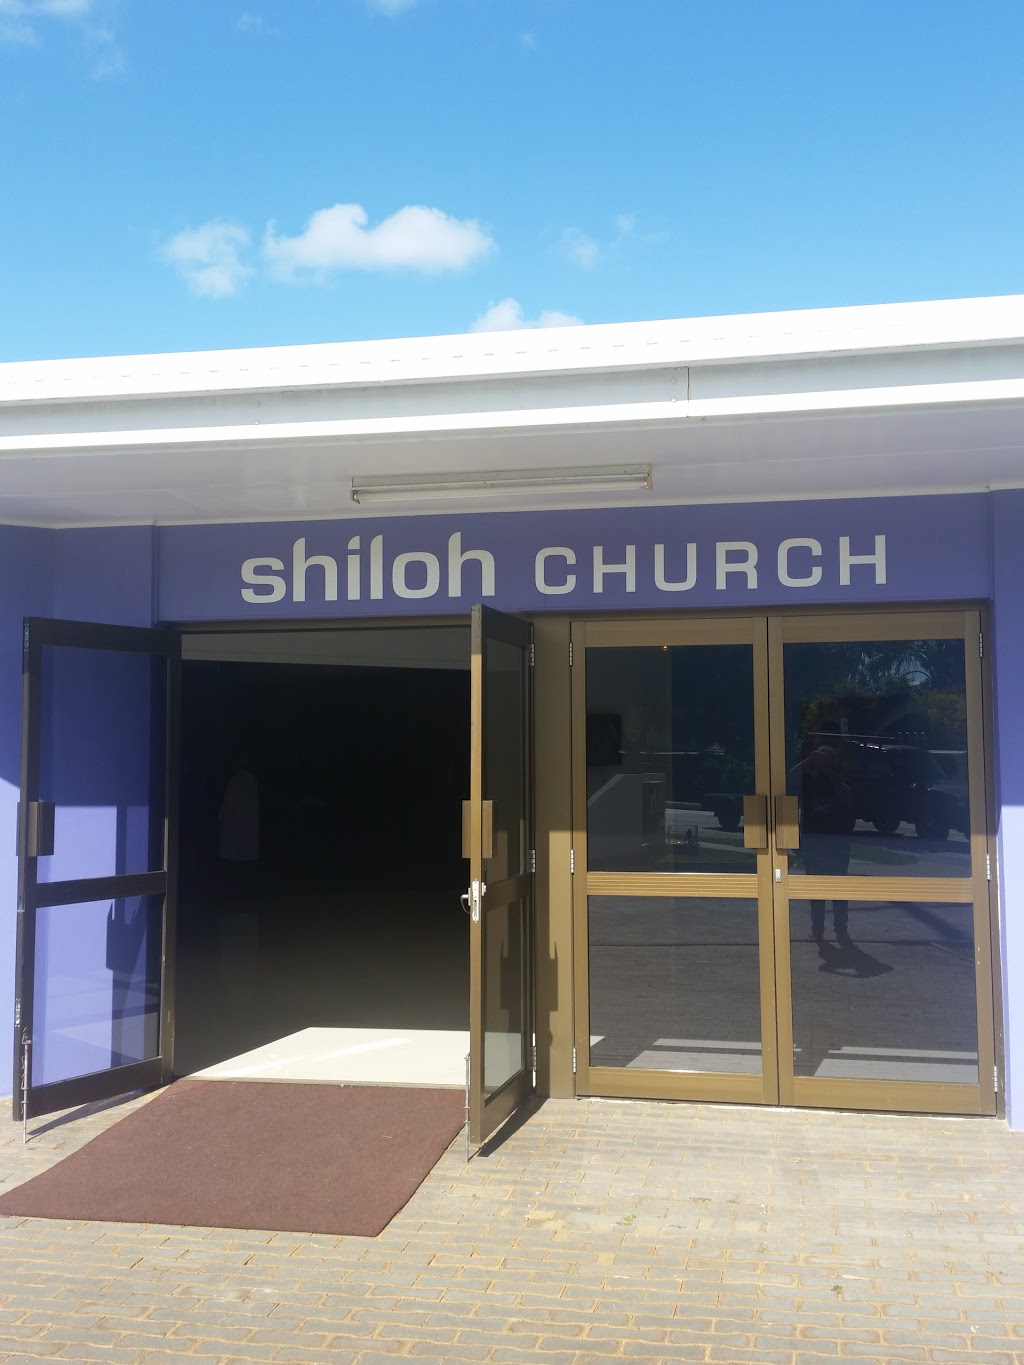 Shiloh Church Goodna | church | 72 Redbank Plains Rd, Goodna QLD 4300, Australia | 0732885966 OR +61 7 3288 5966